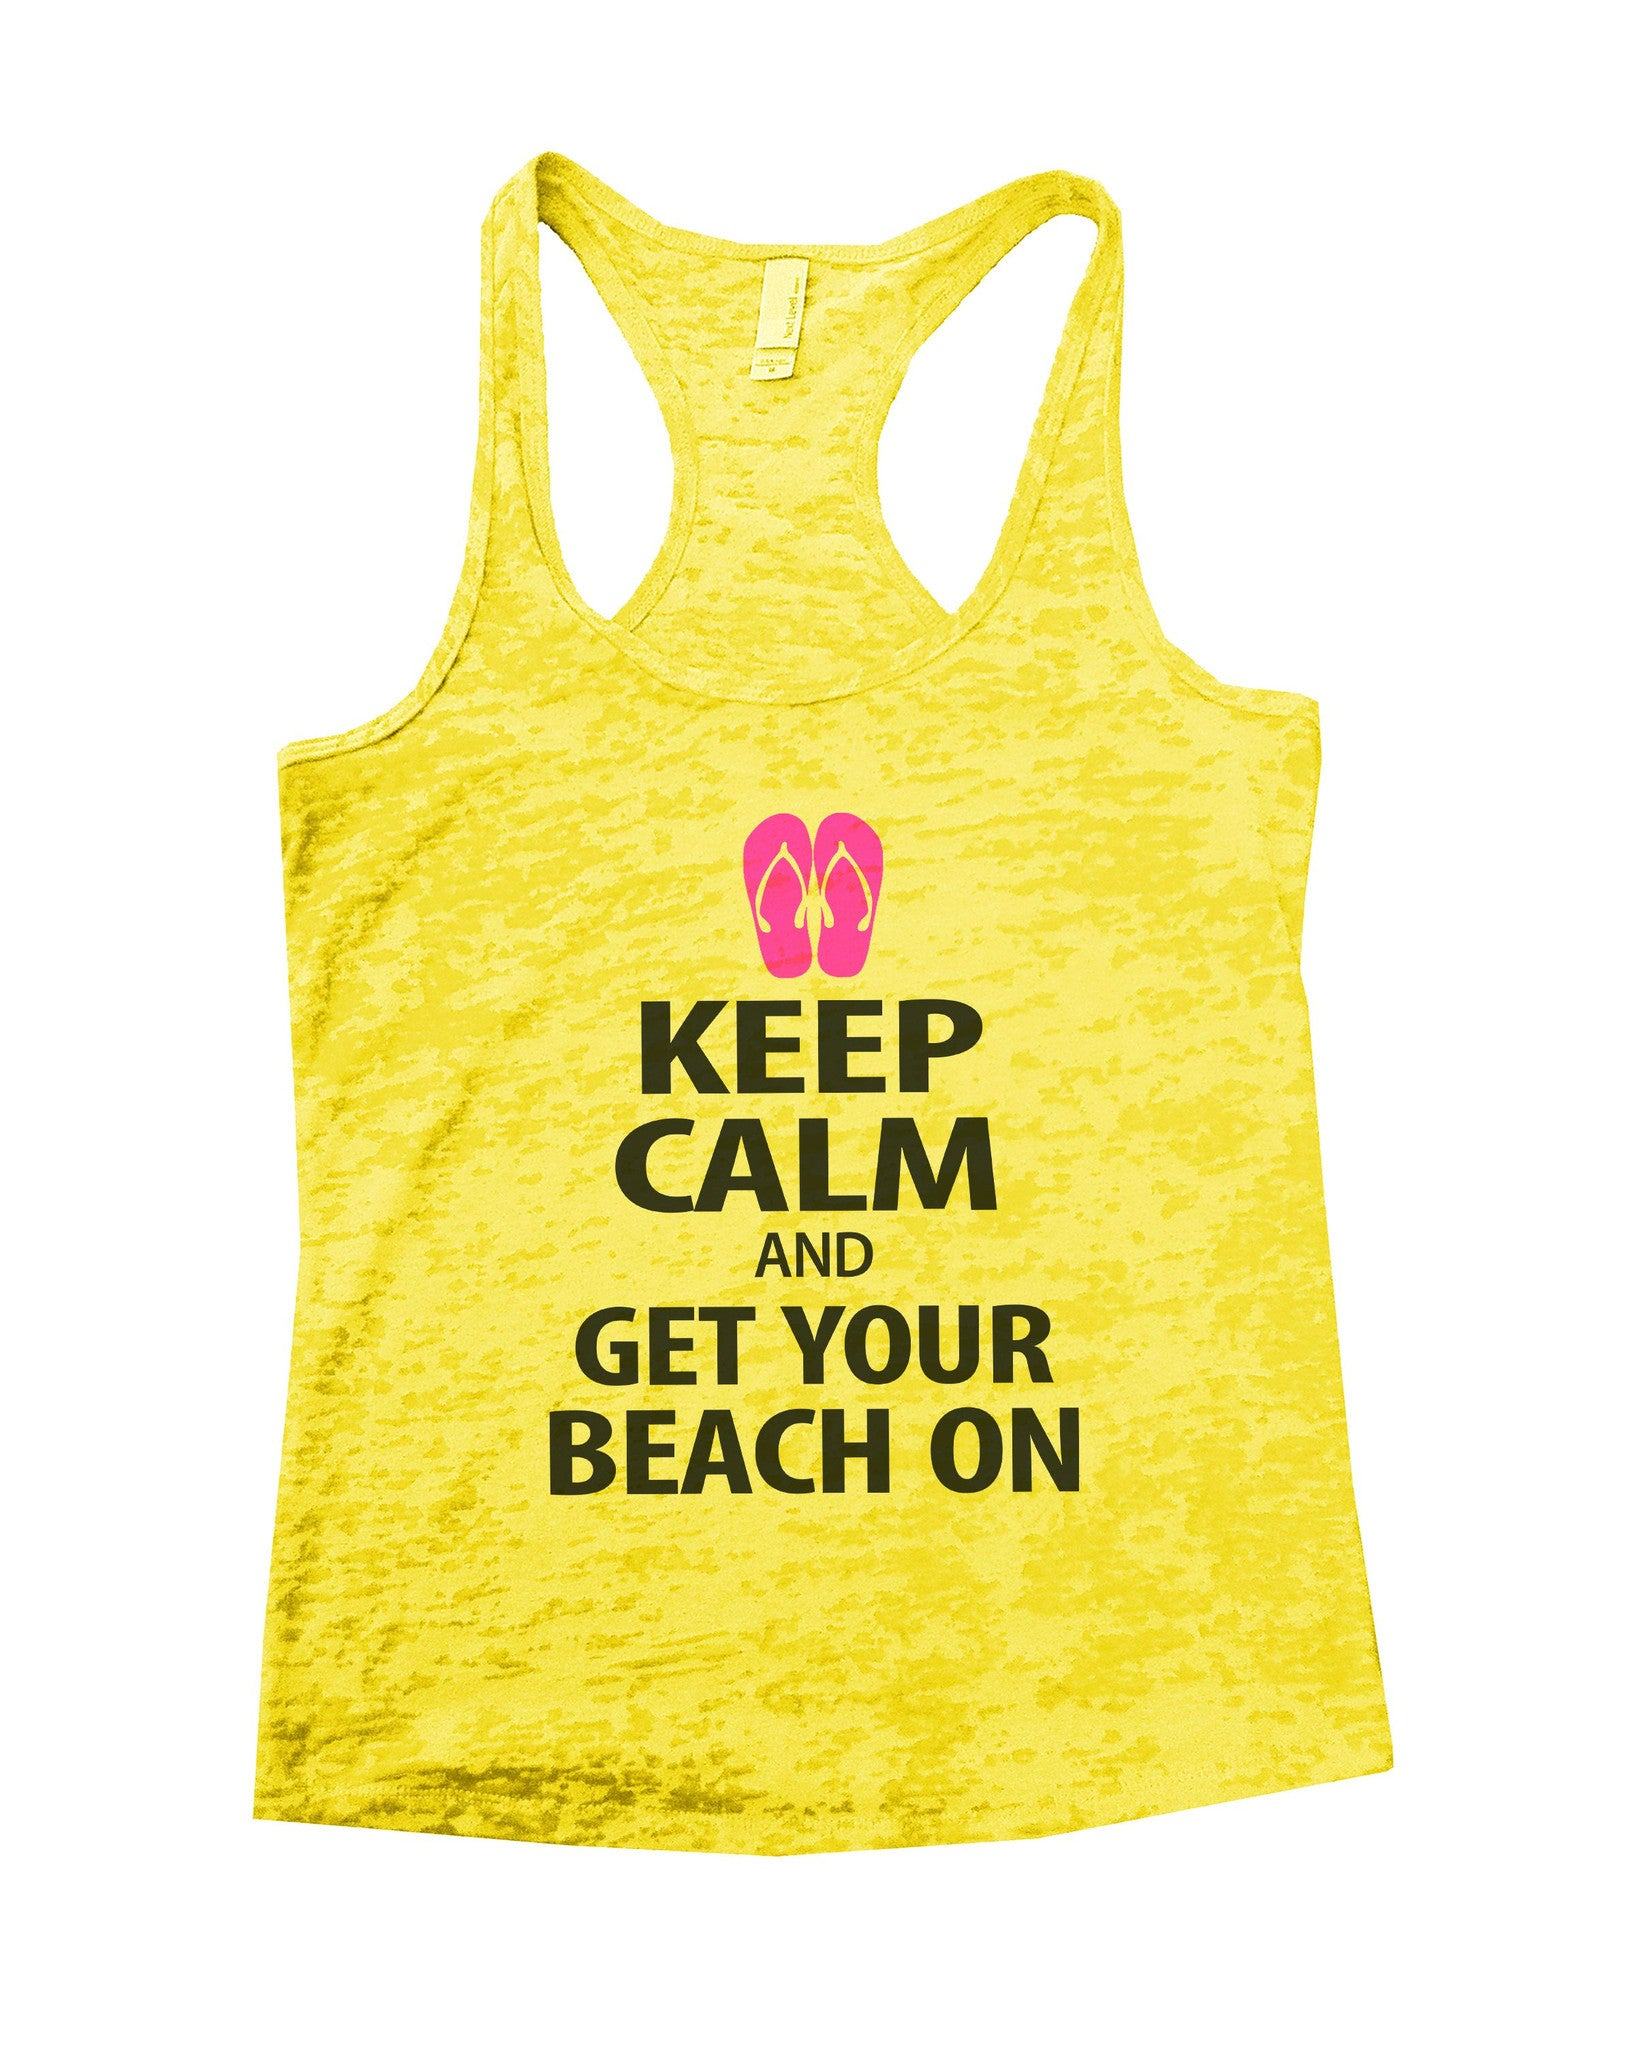 Keep Calm And Get Your Beach On Burnout Tank Top By BurnoutTankTops.com - 550 - Funny Shirts Tank Tops Burnouts and Triblends  - 7